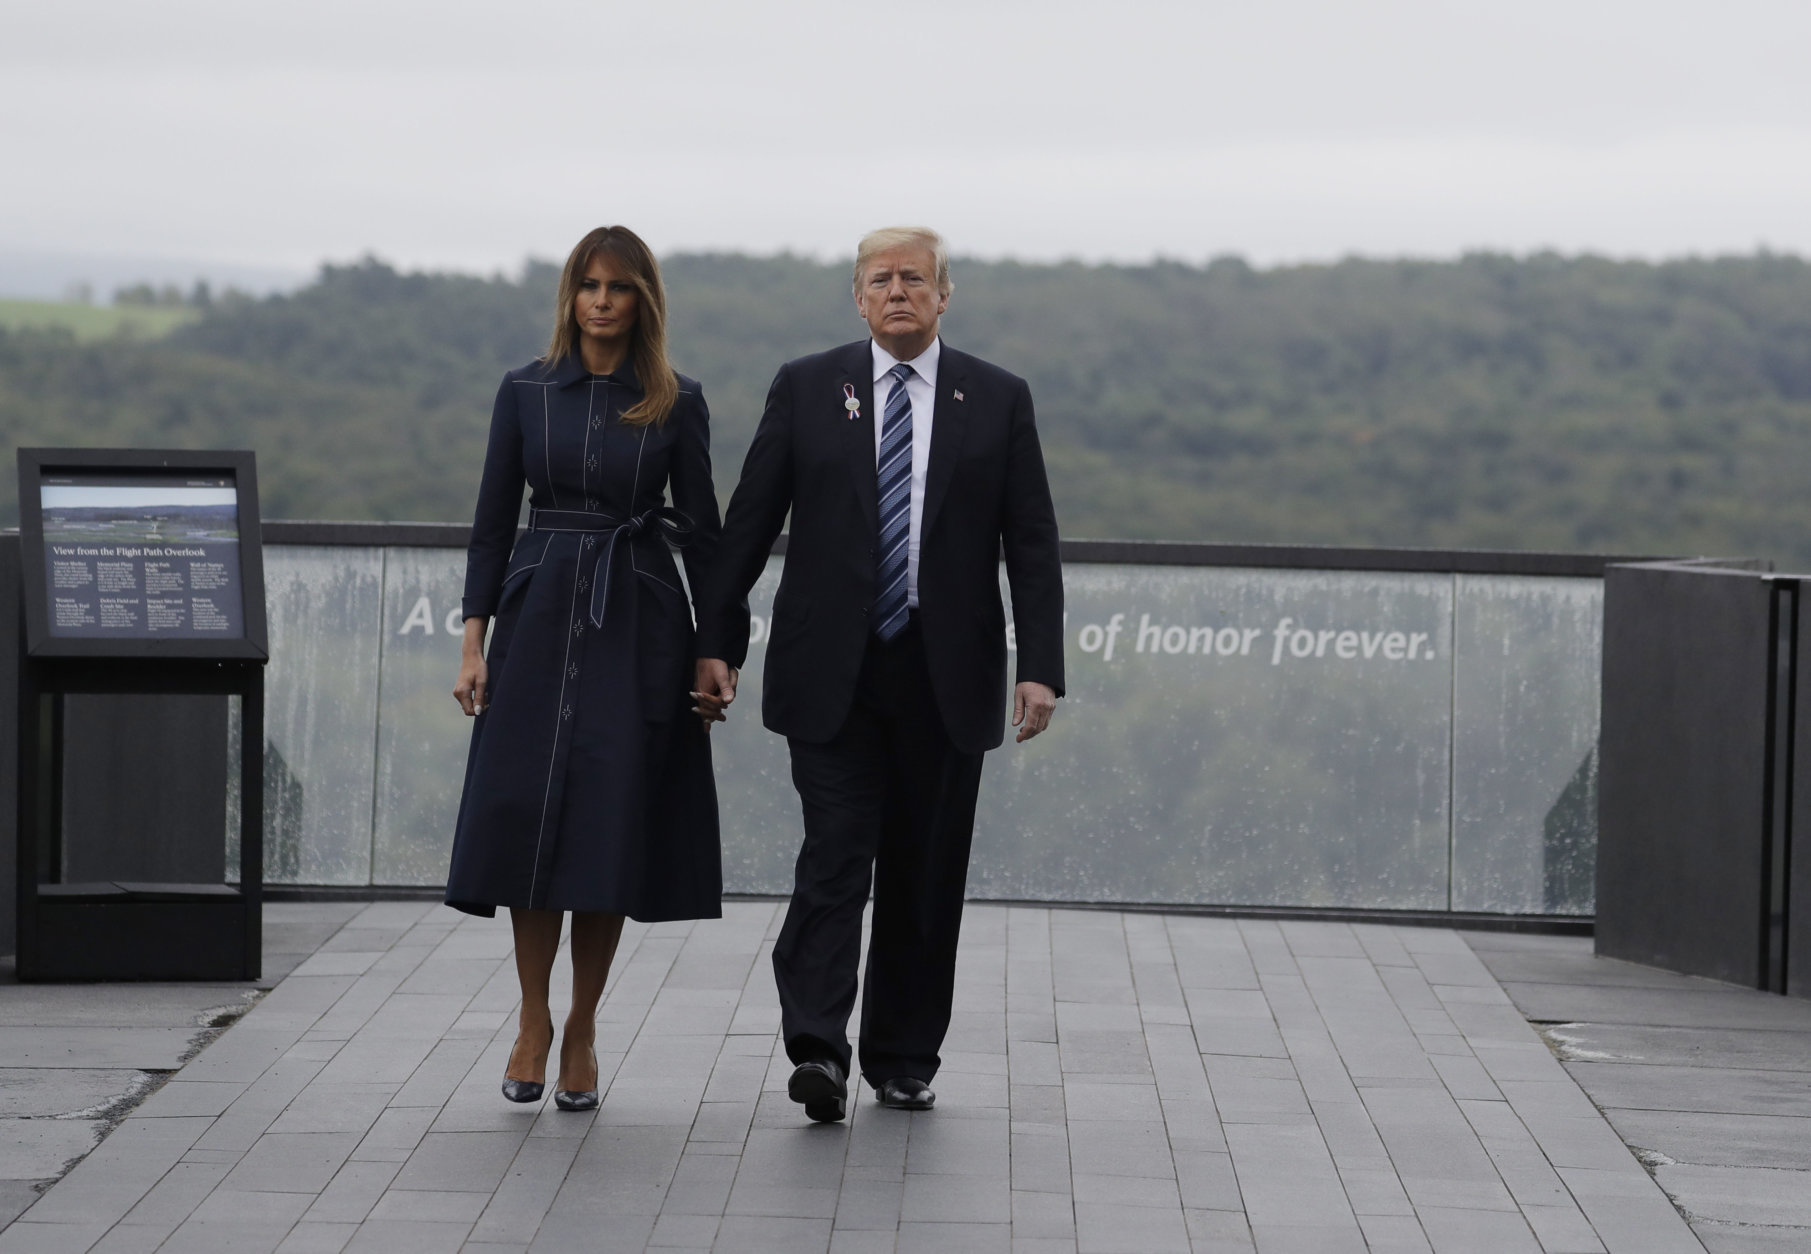 President Donald Trump and first lady Melania Trump, walk along the September 11th Flight 93 memorial, Tuesday, Sept. 11, 2018, in Shanksville, Pa., escorted by  (AP Photo/Evan Vucci)